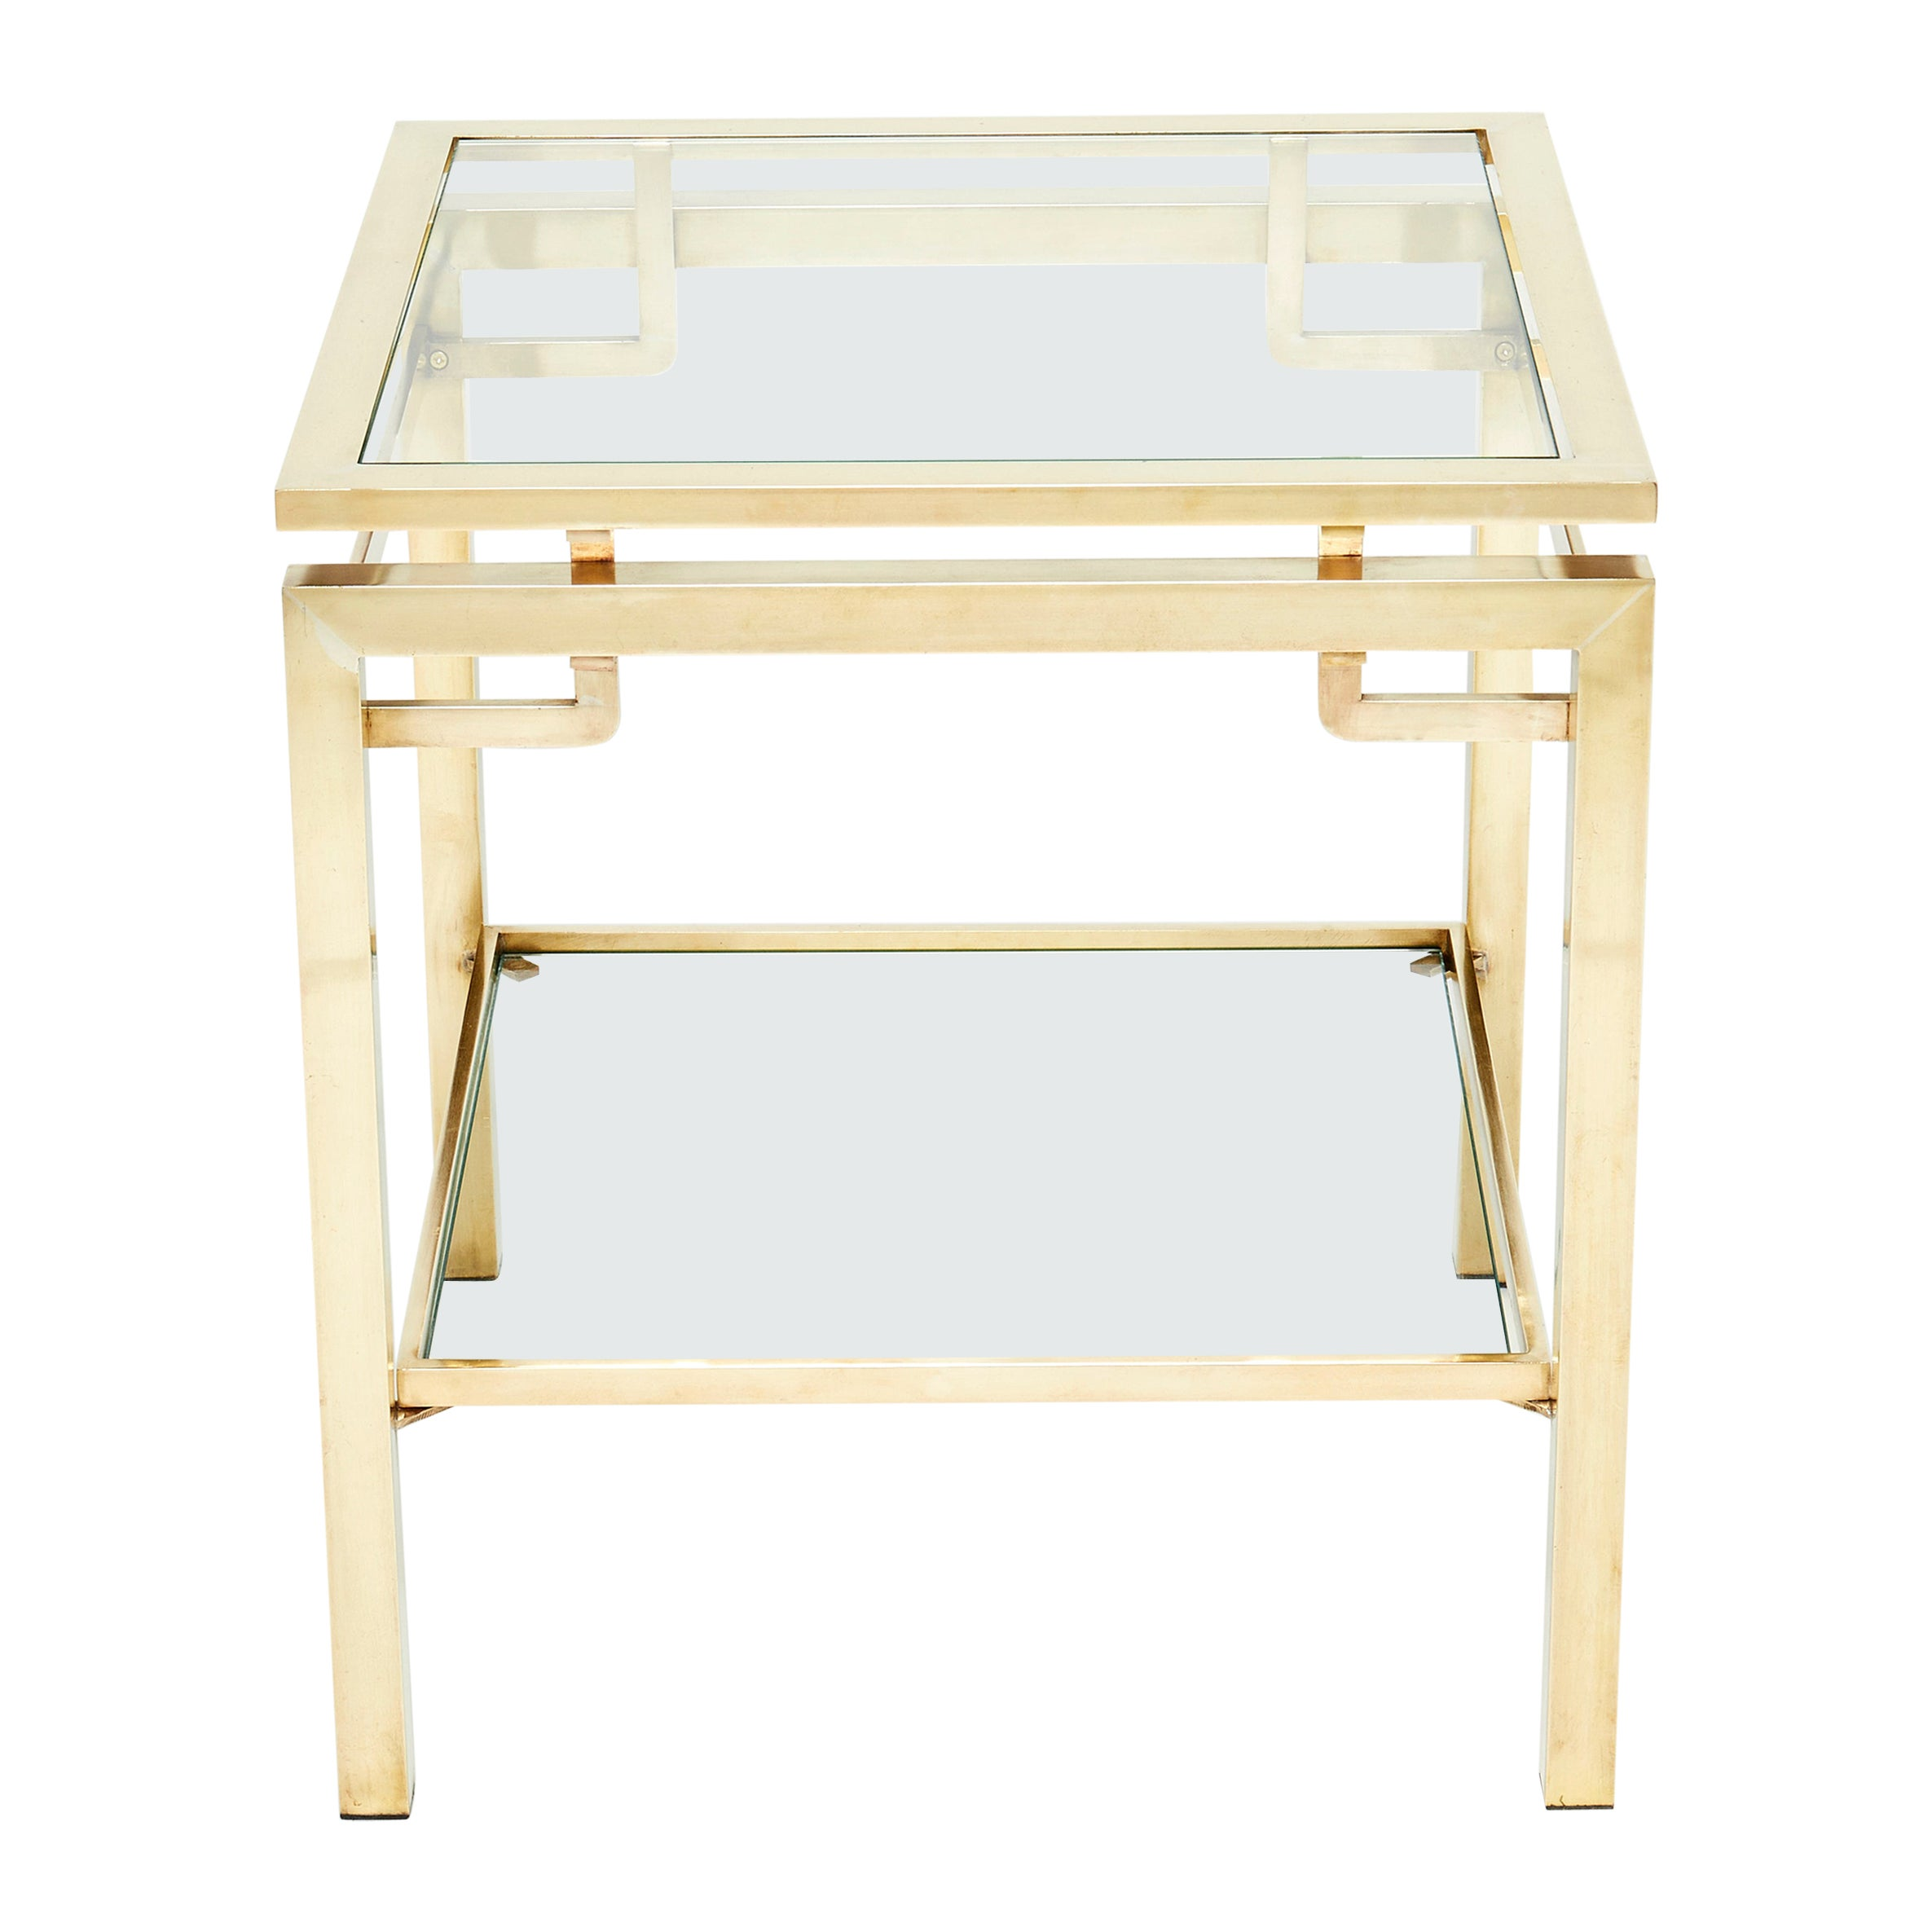 French Brass Two-Tier End Table Guy Lefevre for Maison Jansen, 1970s